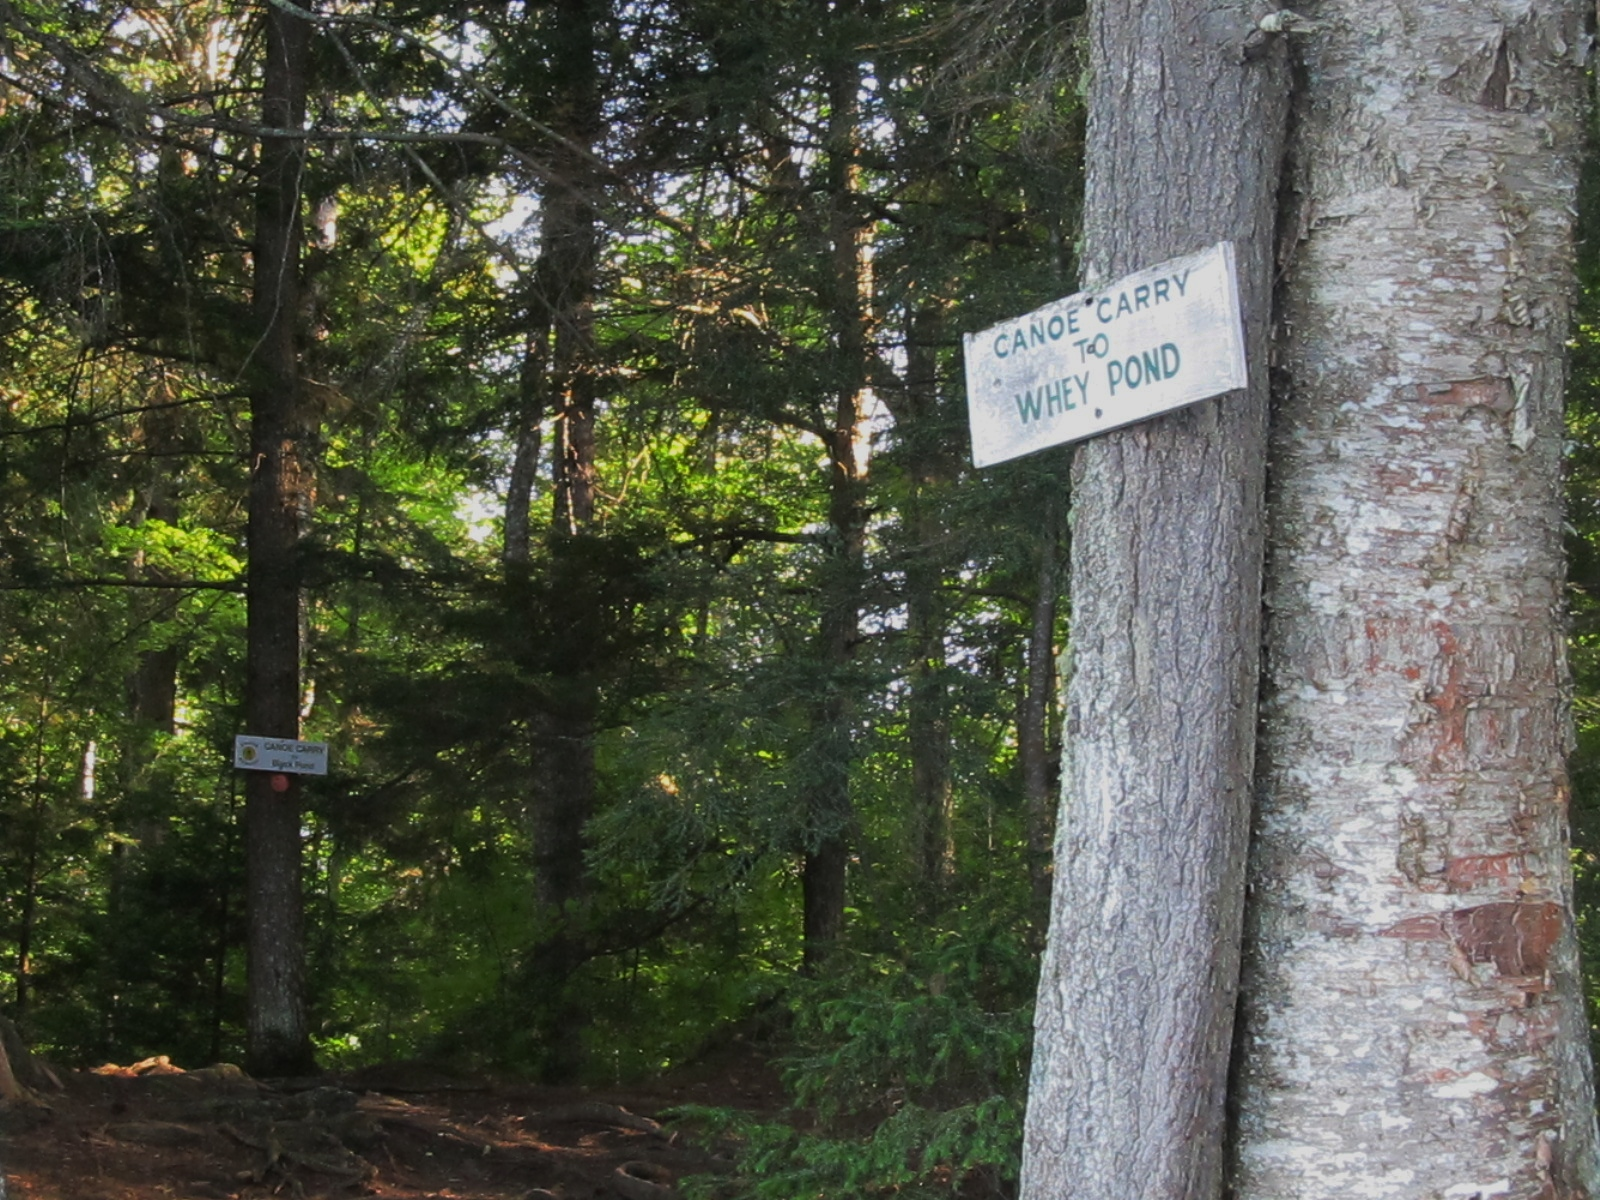 Portage signs in Copperas to Whey Pond and Black Pond